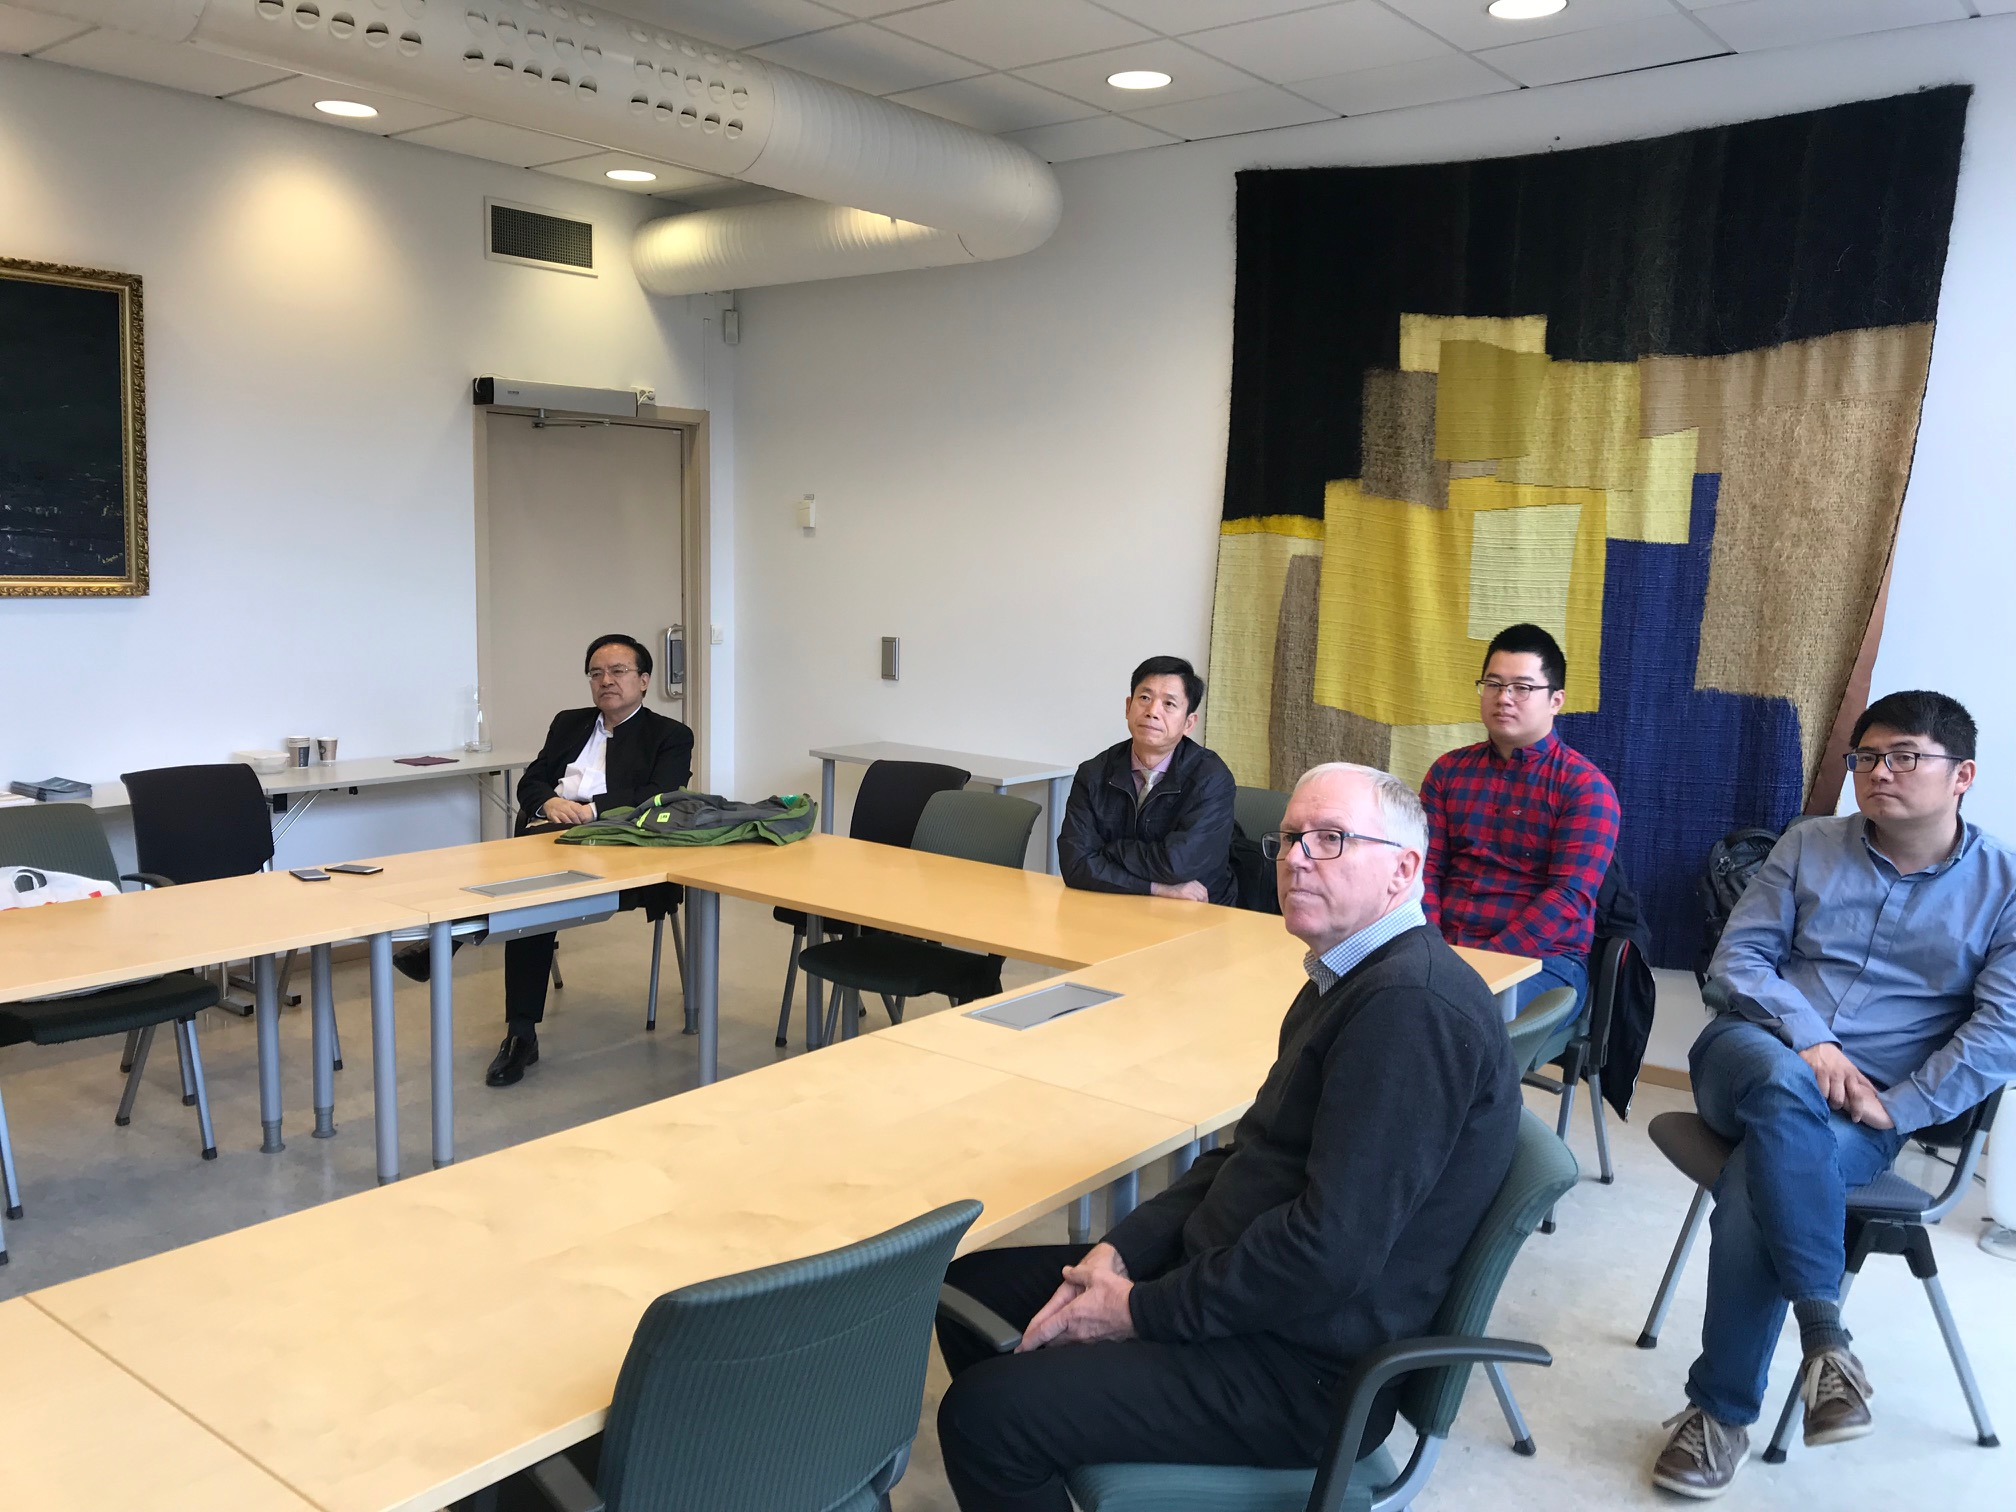 VISIT TO IGP FROM CHINA UNIVERSITY OF PETROLEUM BEIJING (CUPB)